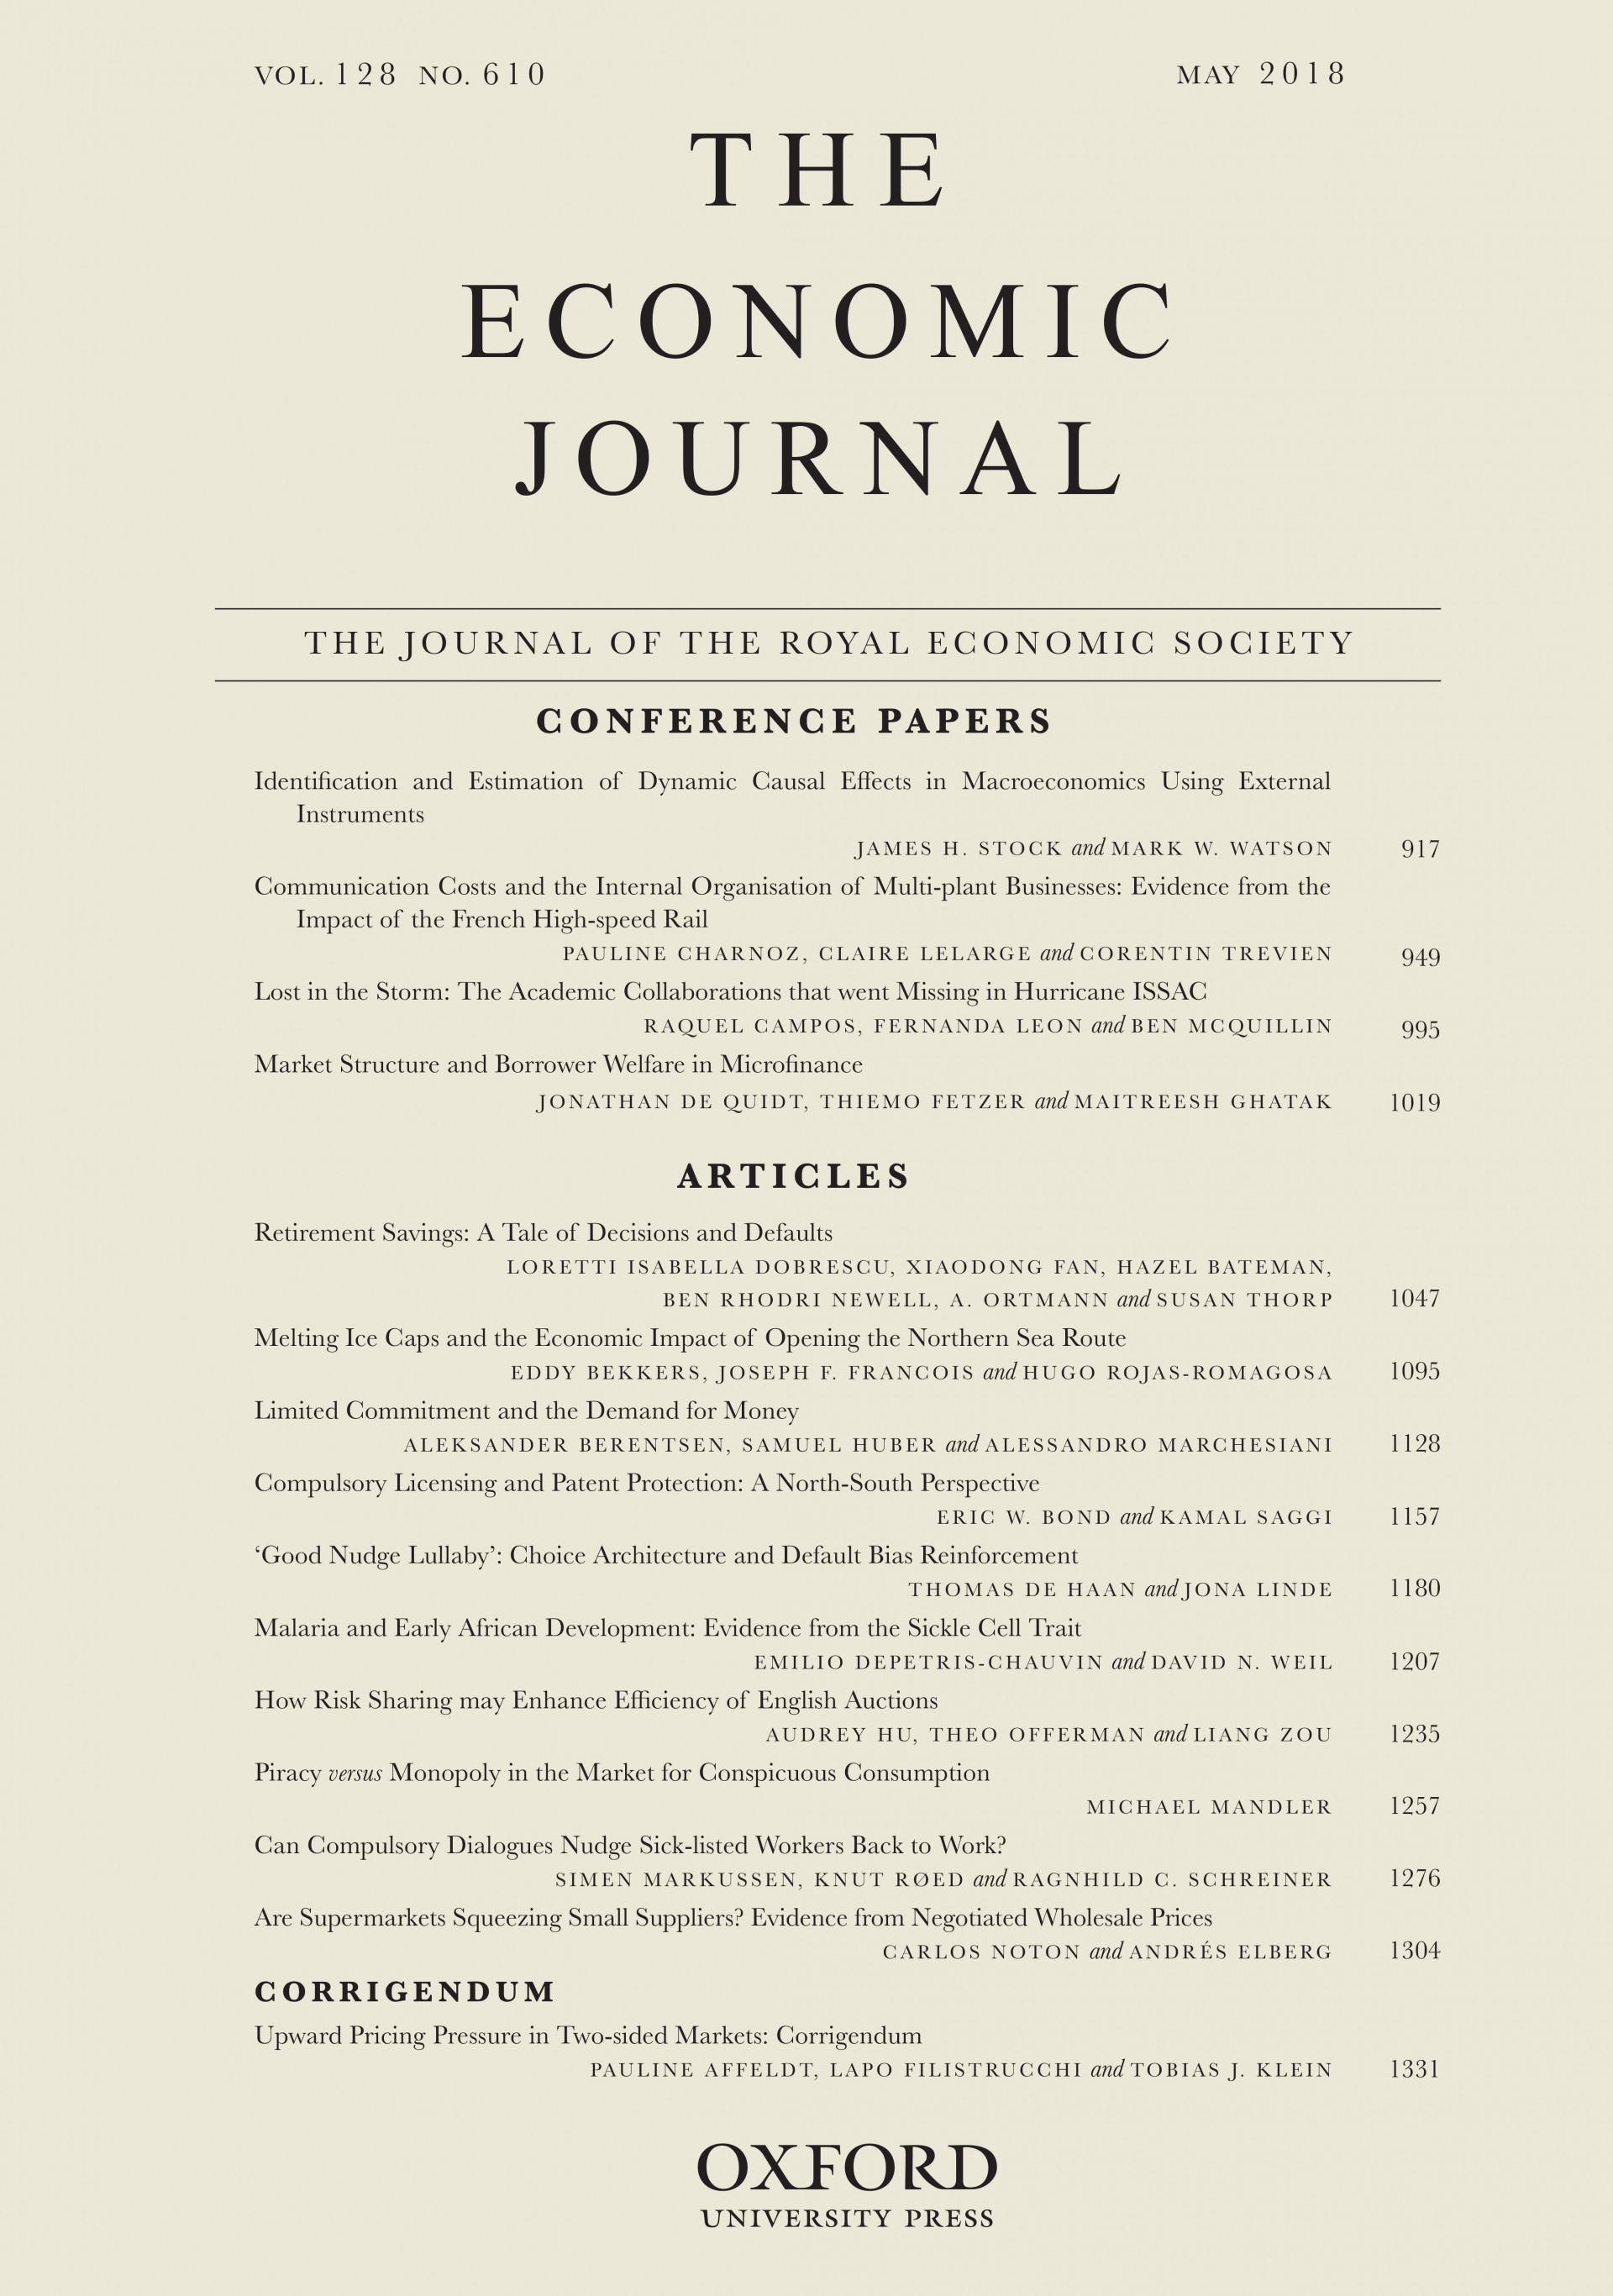 005 Research Paper Ej Economics Papers Exceptional Pdf On Financial Health 1920